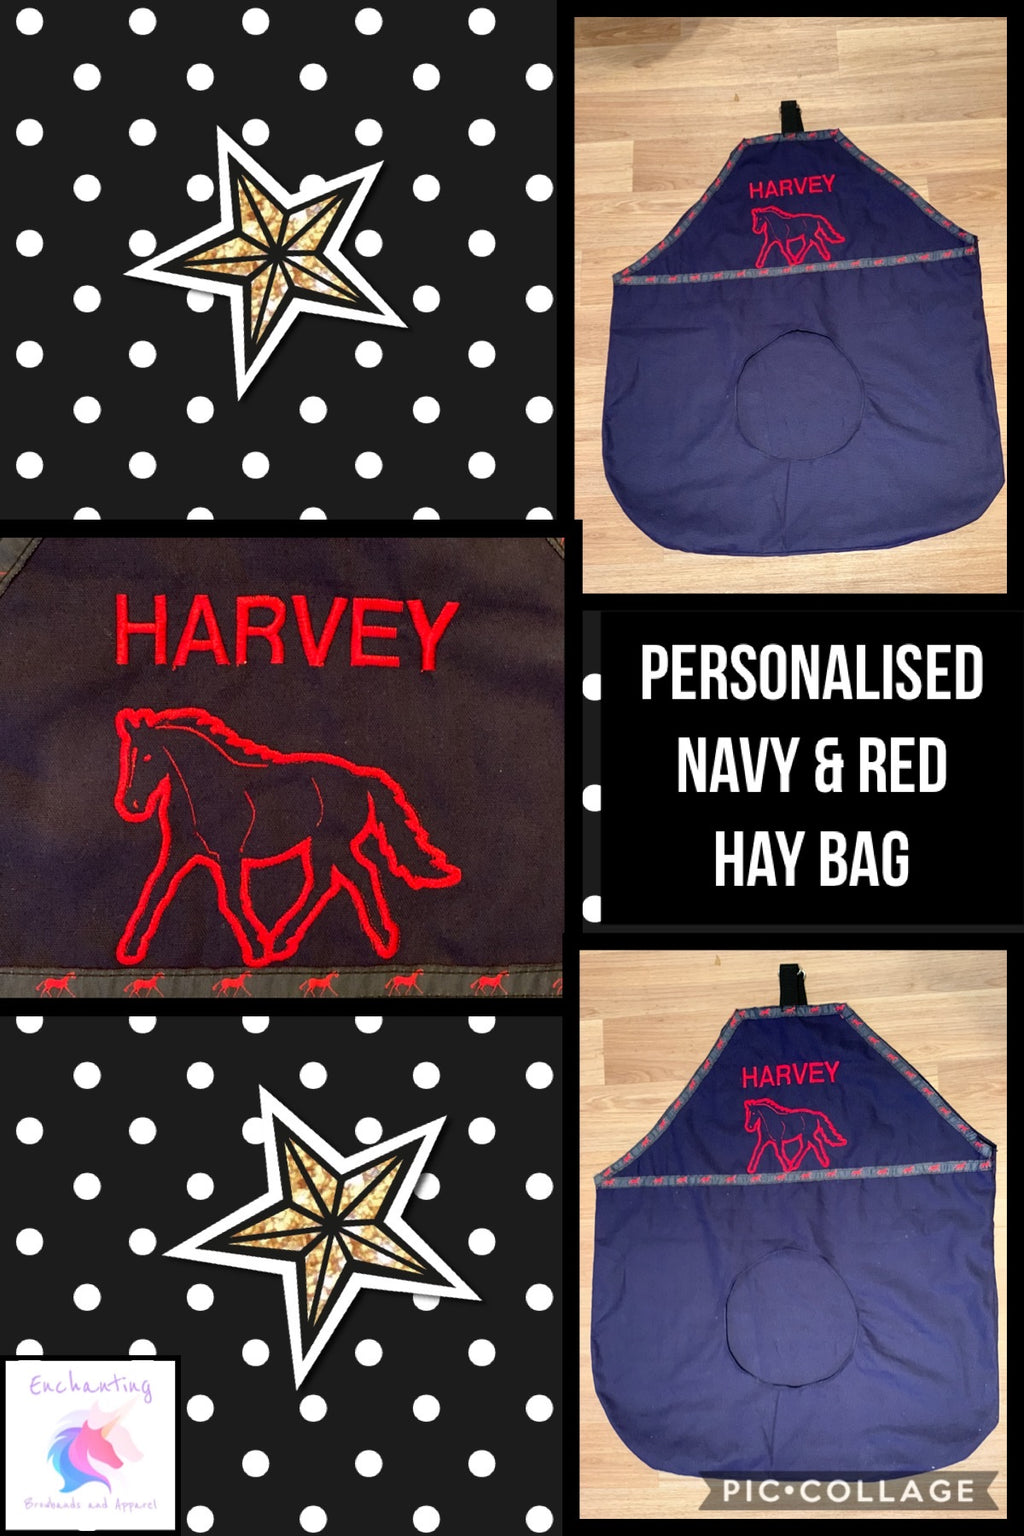 Personalised hay bag